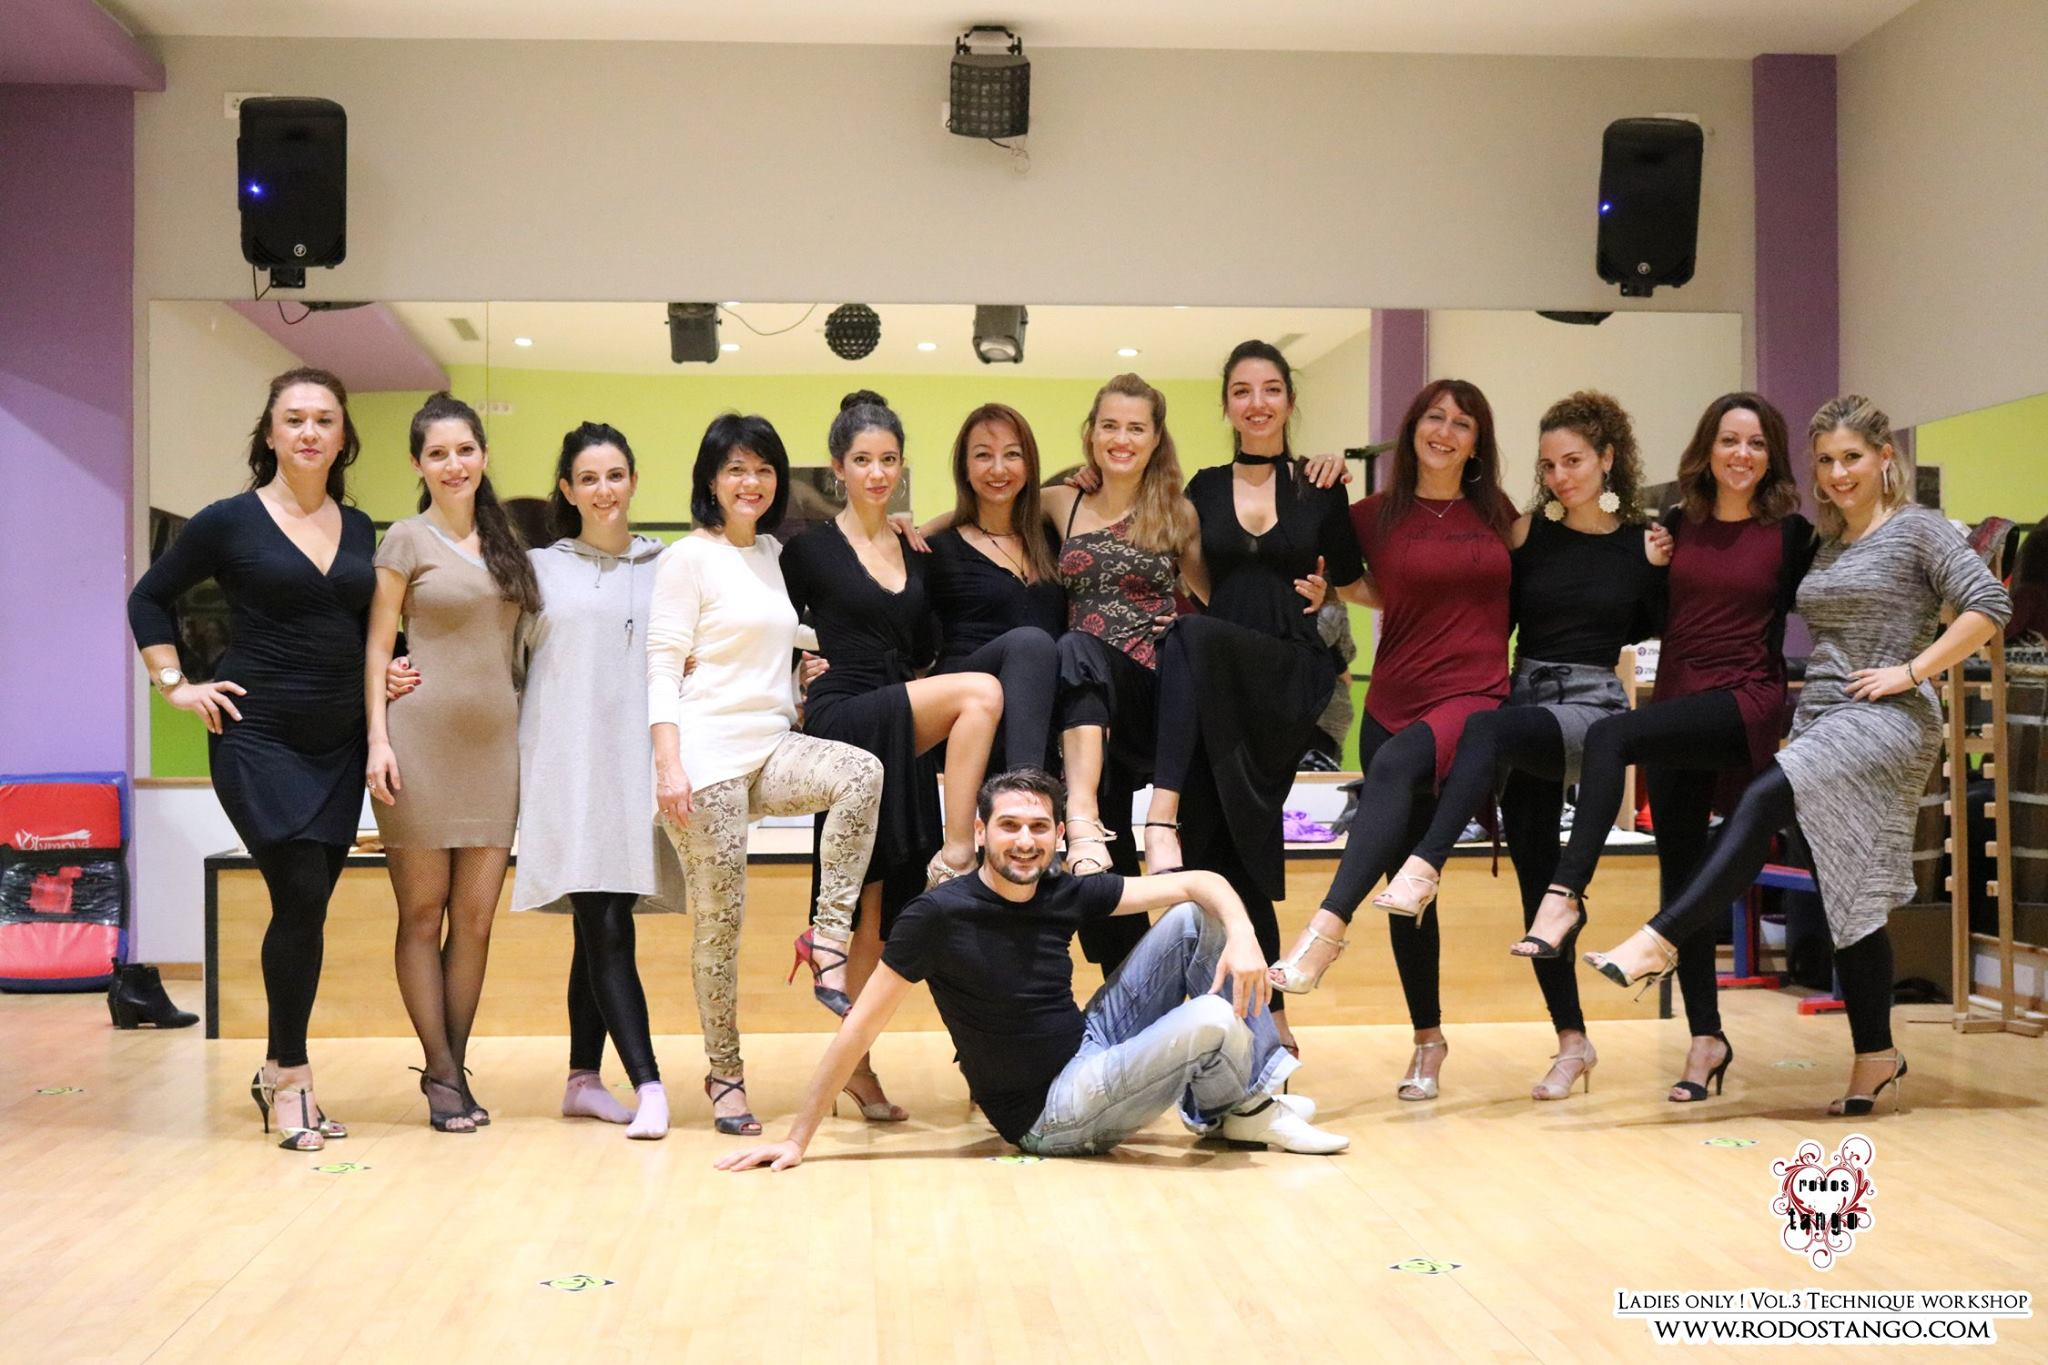 3rd ღ RodosTango.com - Ladies Only! με την Έλλη Καραδήμου Tango Workshop